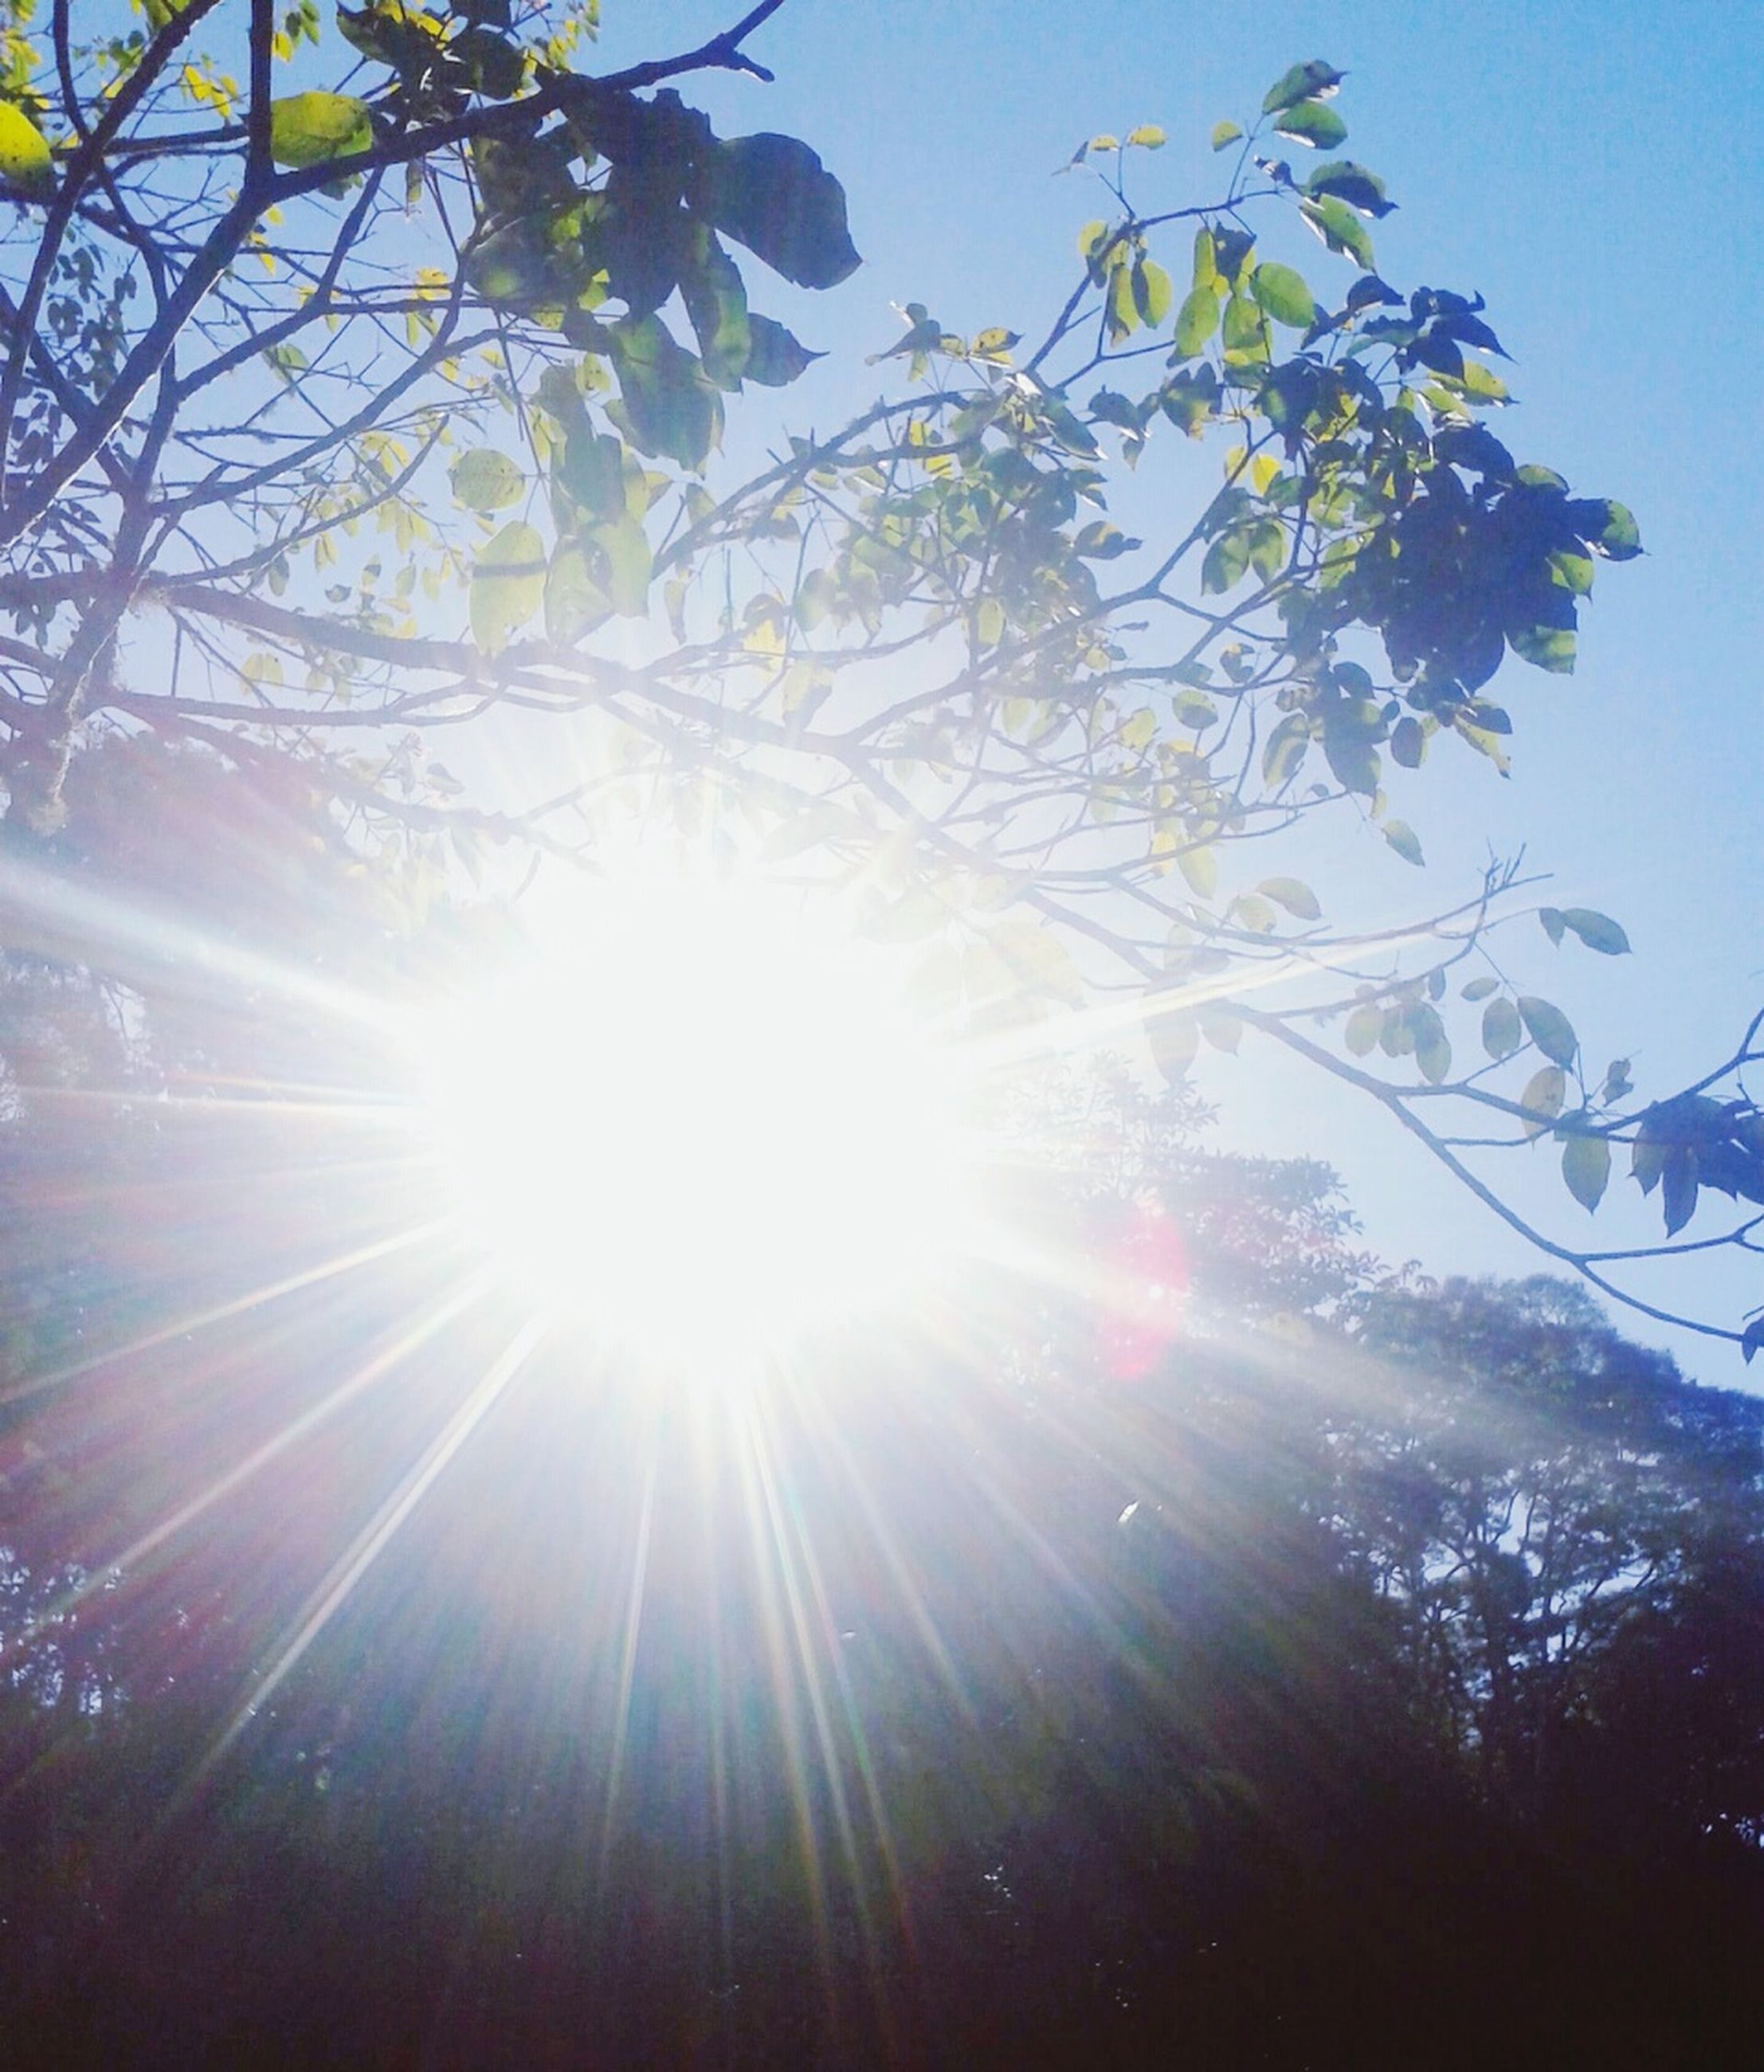 sun, sunbeam, lens flare, sunlight, tree, low angle view, bright, branch, growth, clear sky, nature, sunny, beauty in nature, sky, back lit, tranquility, day, outdoors, no people, brightly lit